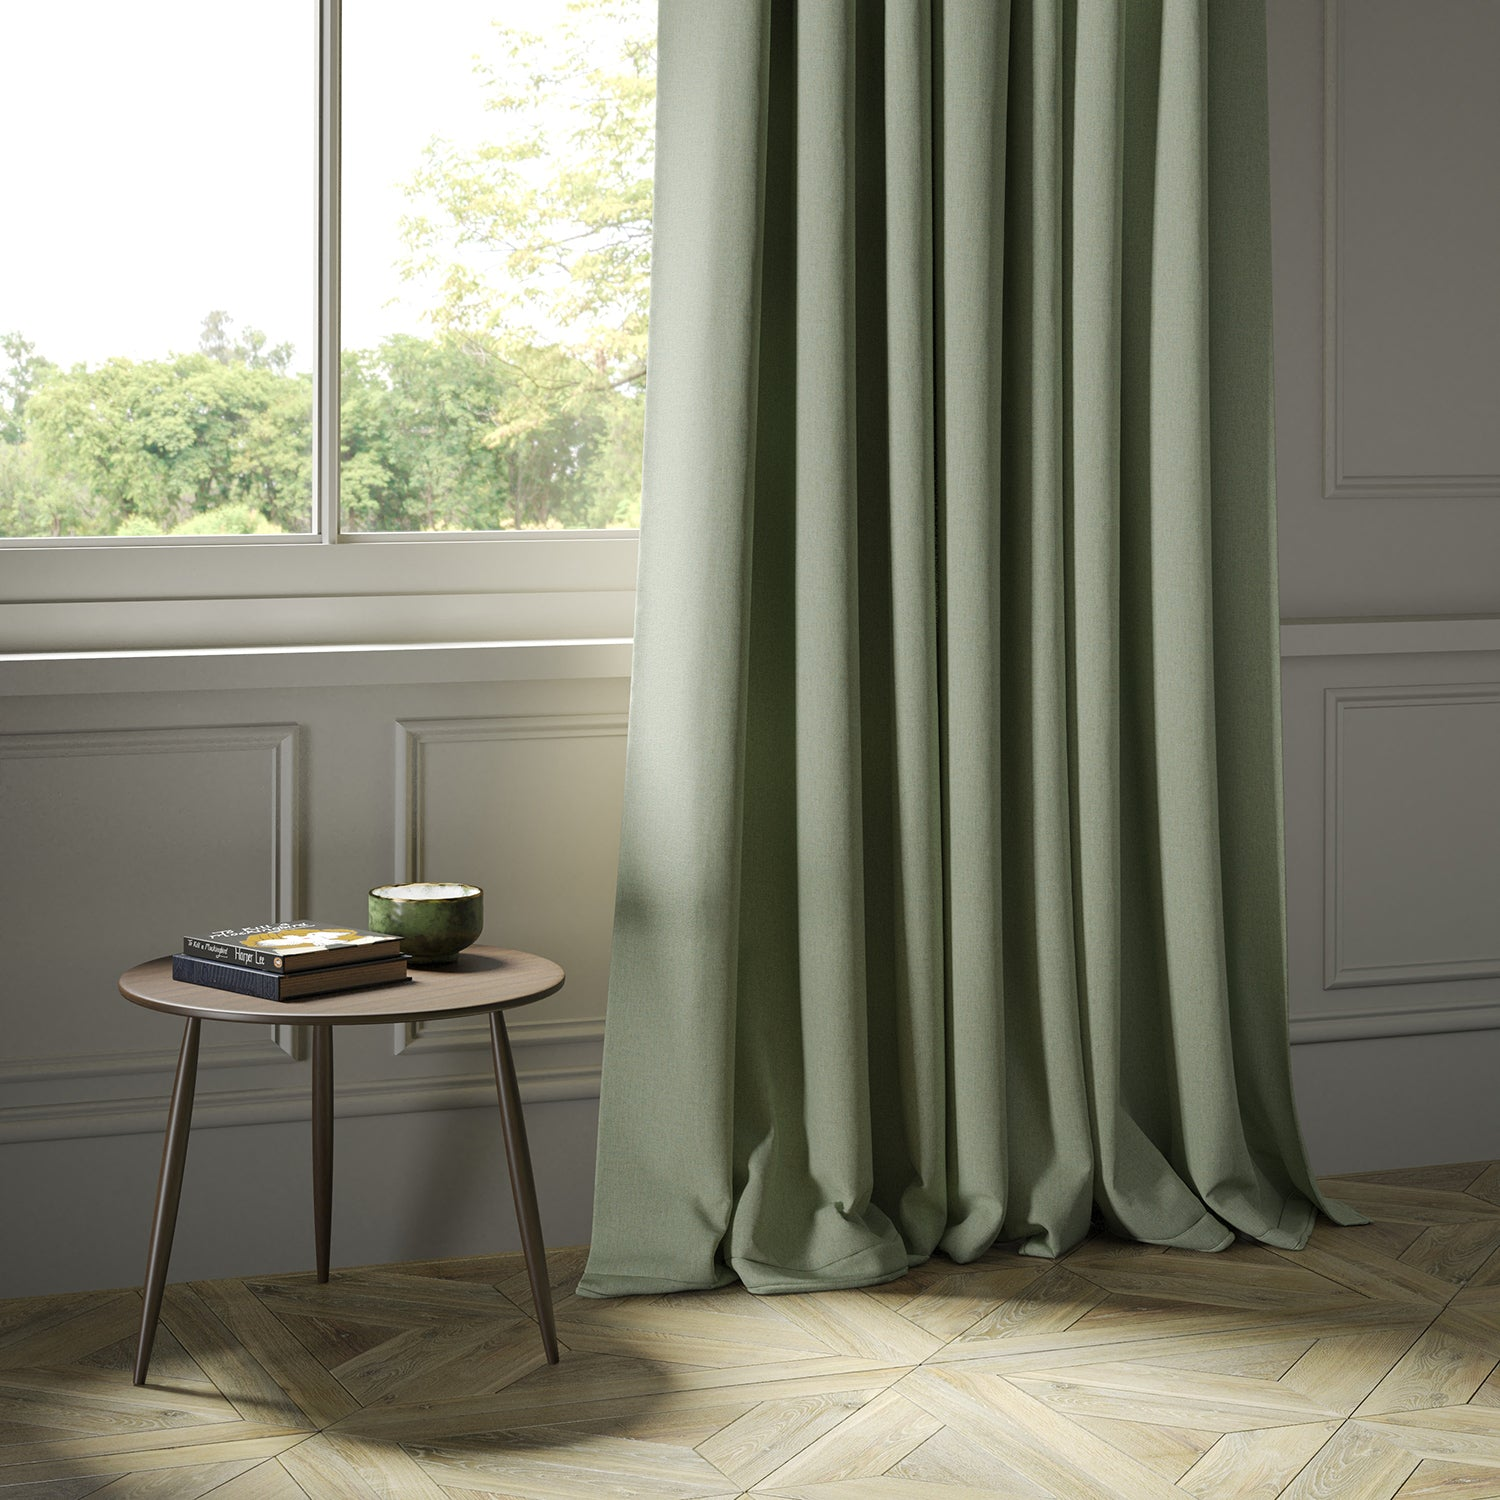 Curtains in a luxury Scottish plain light green wool fabric